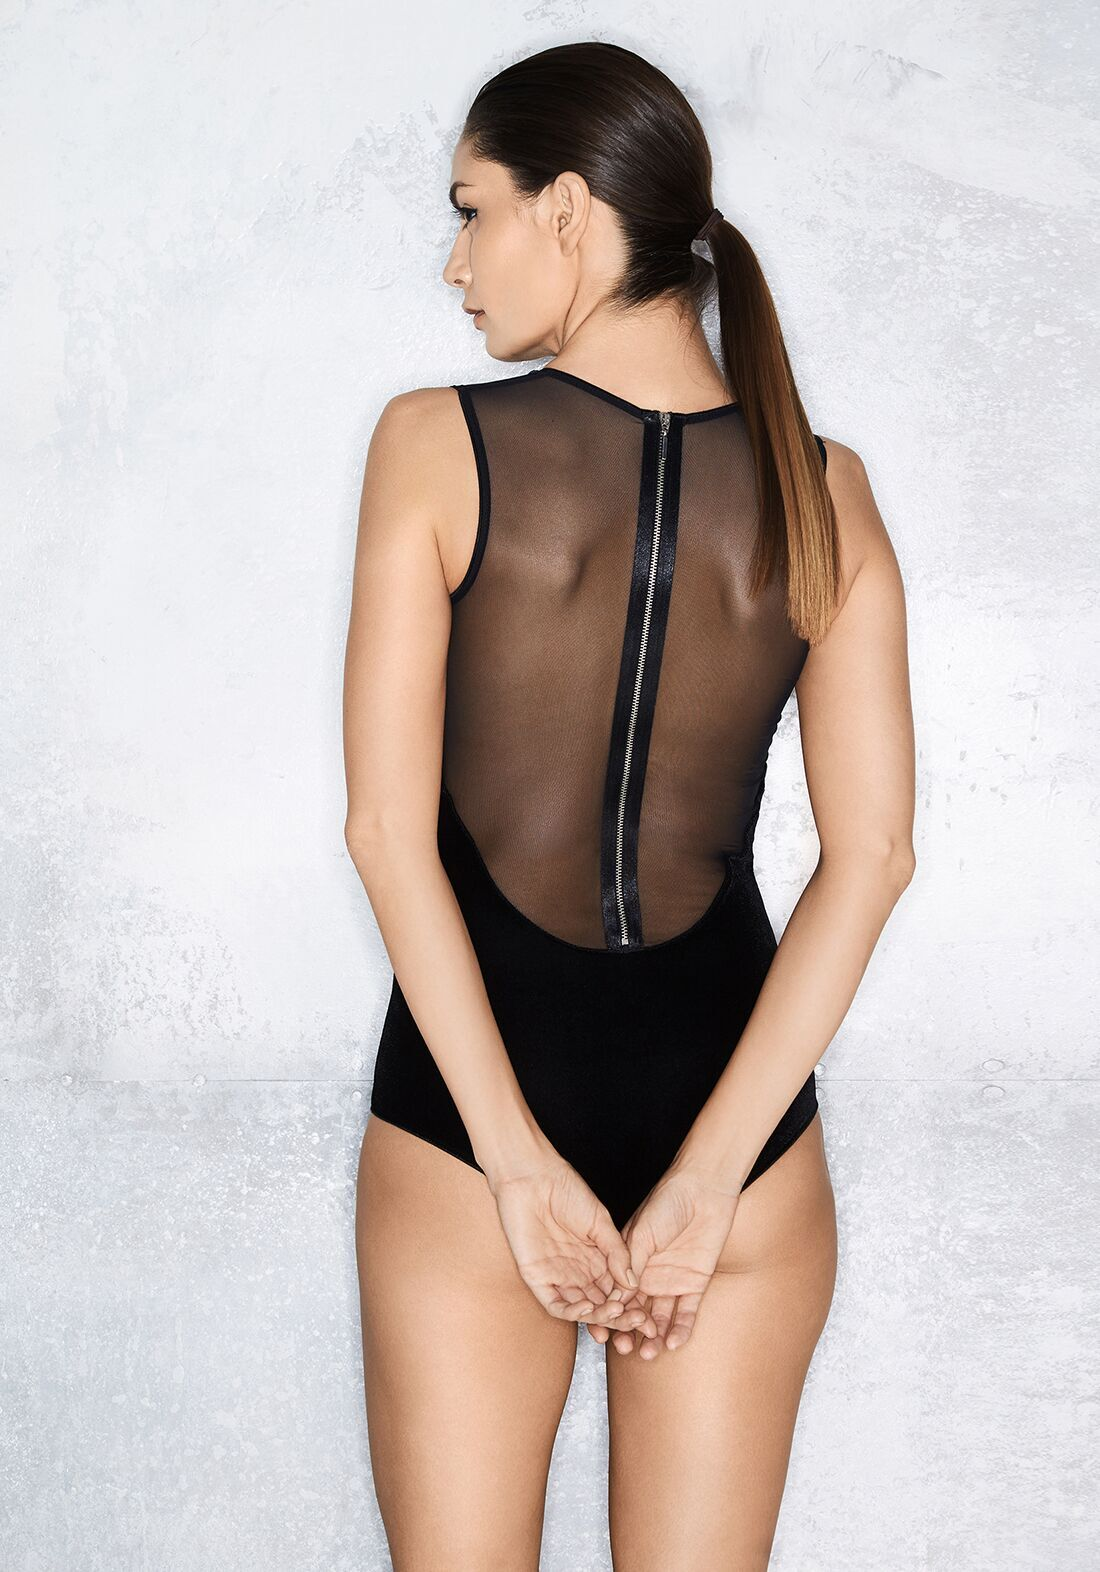 Nocturnelle Padded Half Cup Bodysuit in Noire